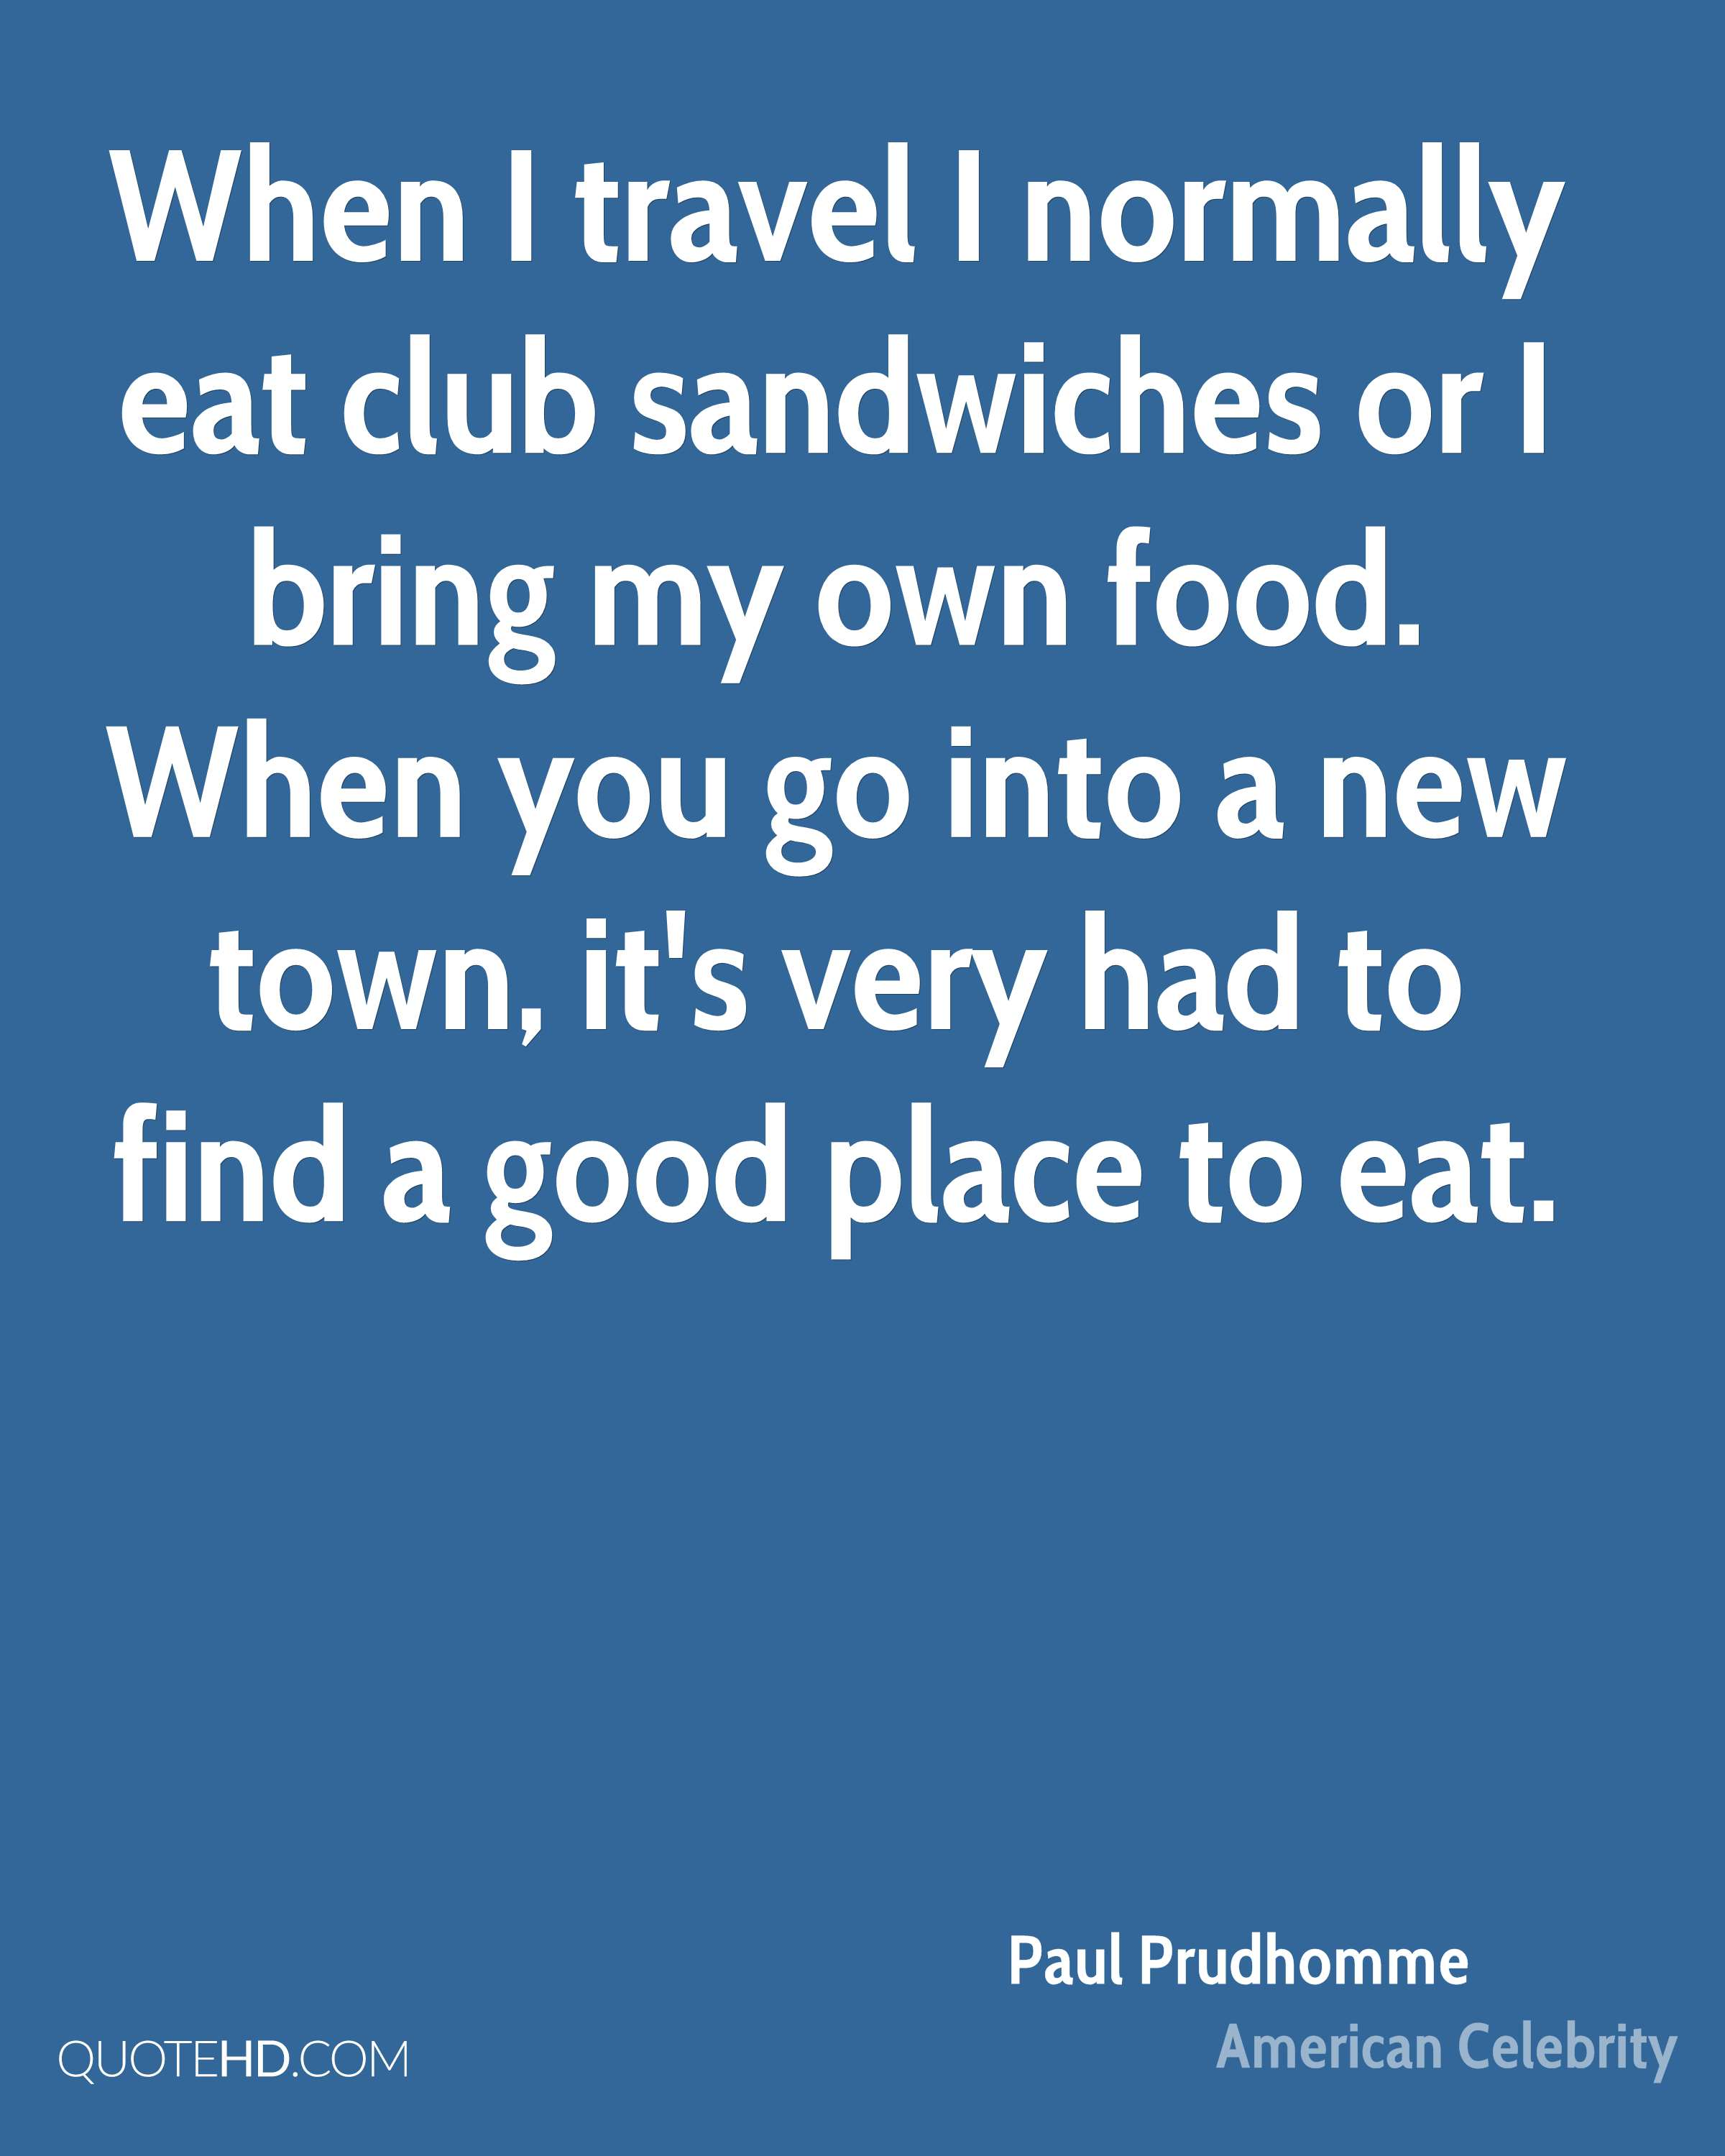 When I travel I normally eat club sandwiches or I bring my own food. When you go into a new town, it's very had to find a good place to eat.